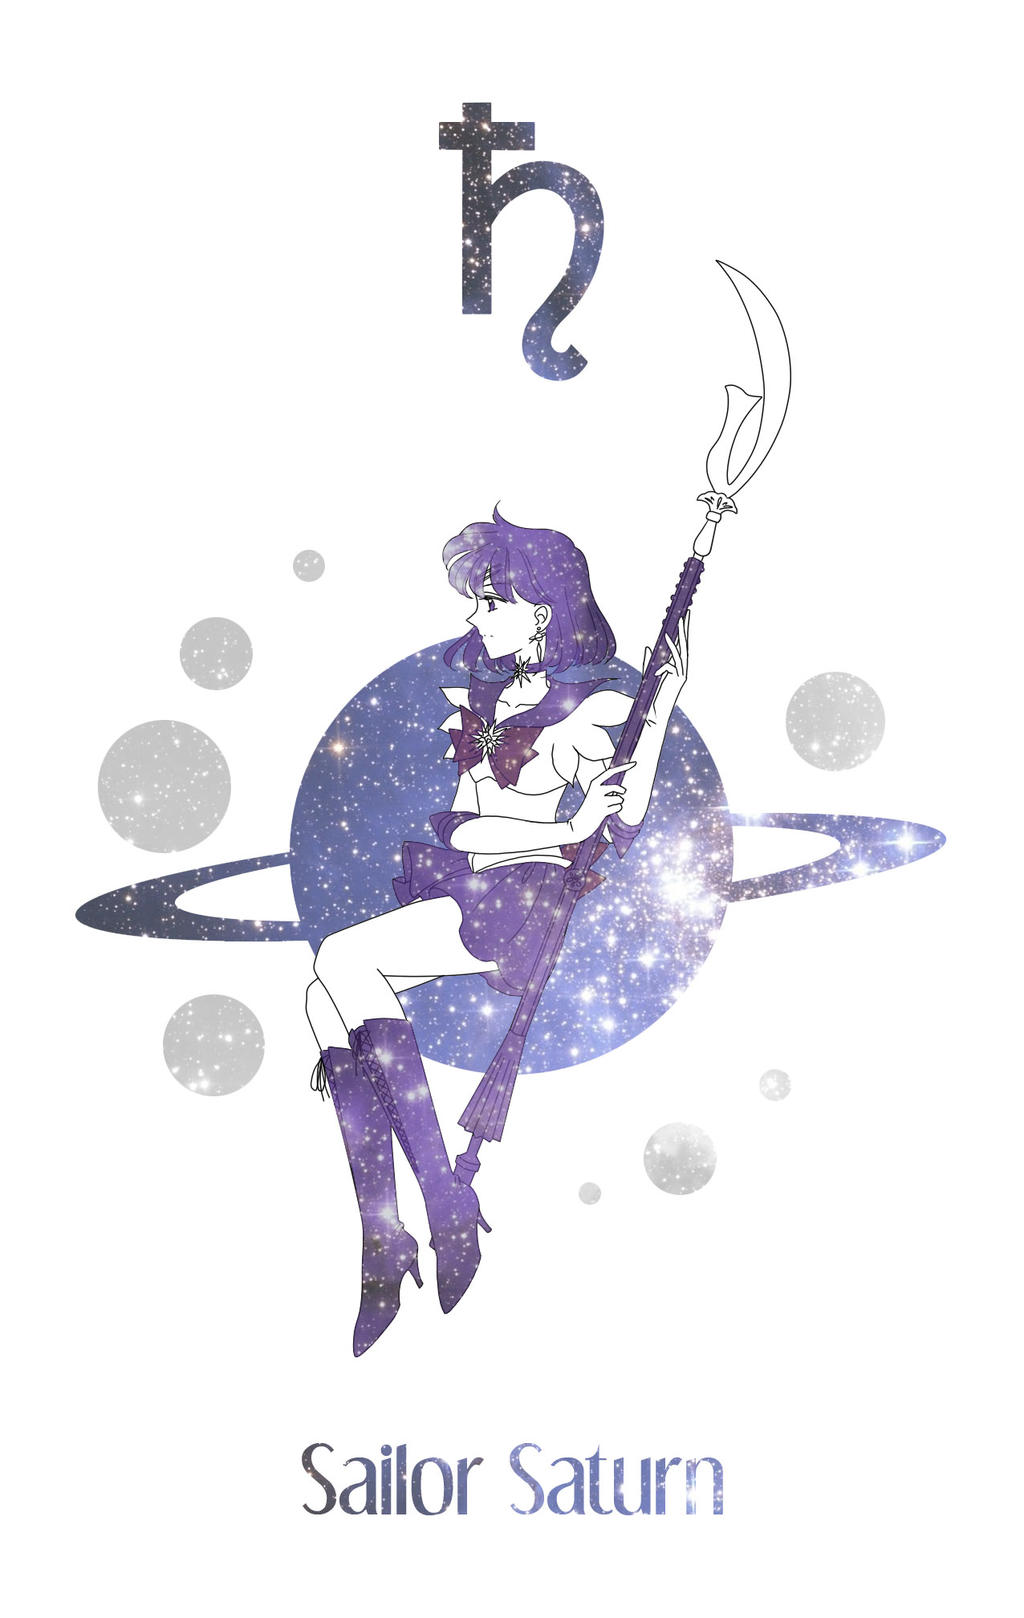 Sailor Saturn by Mangaka-chan